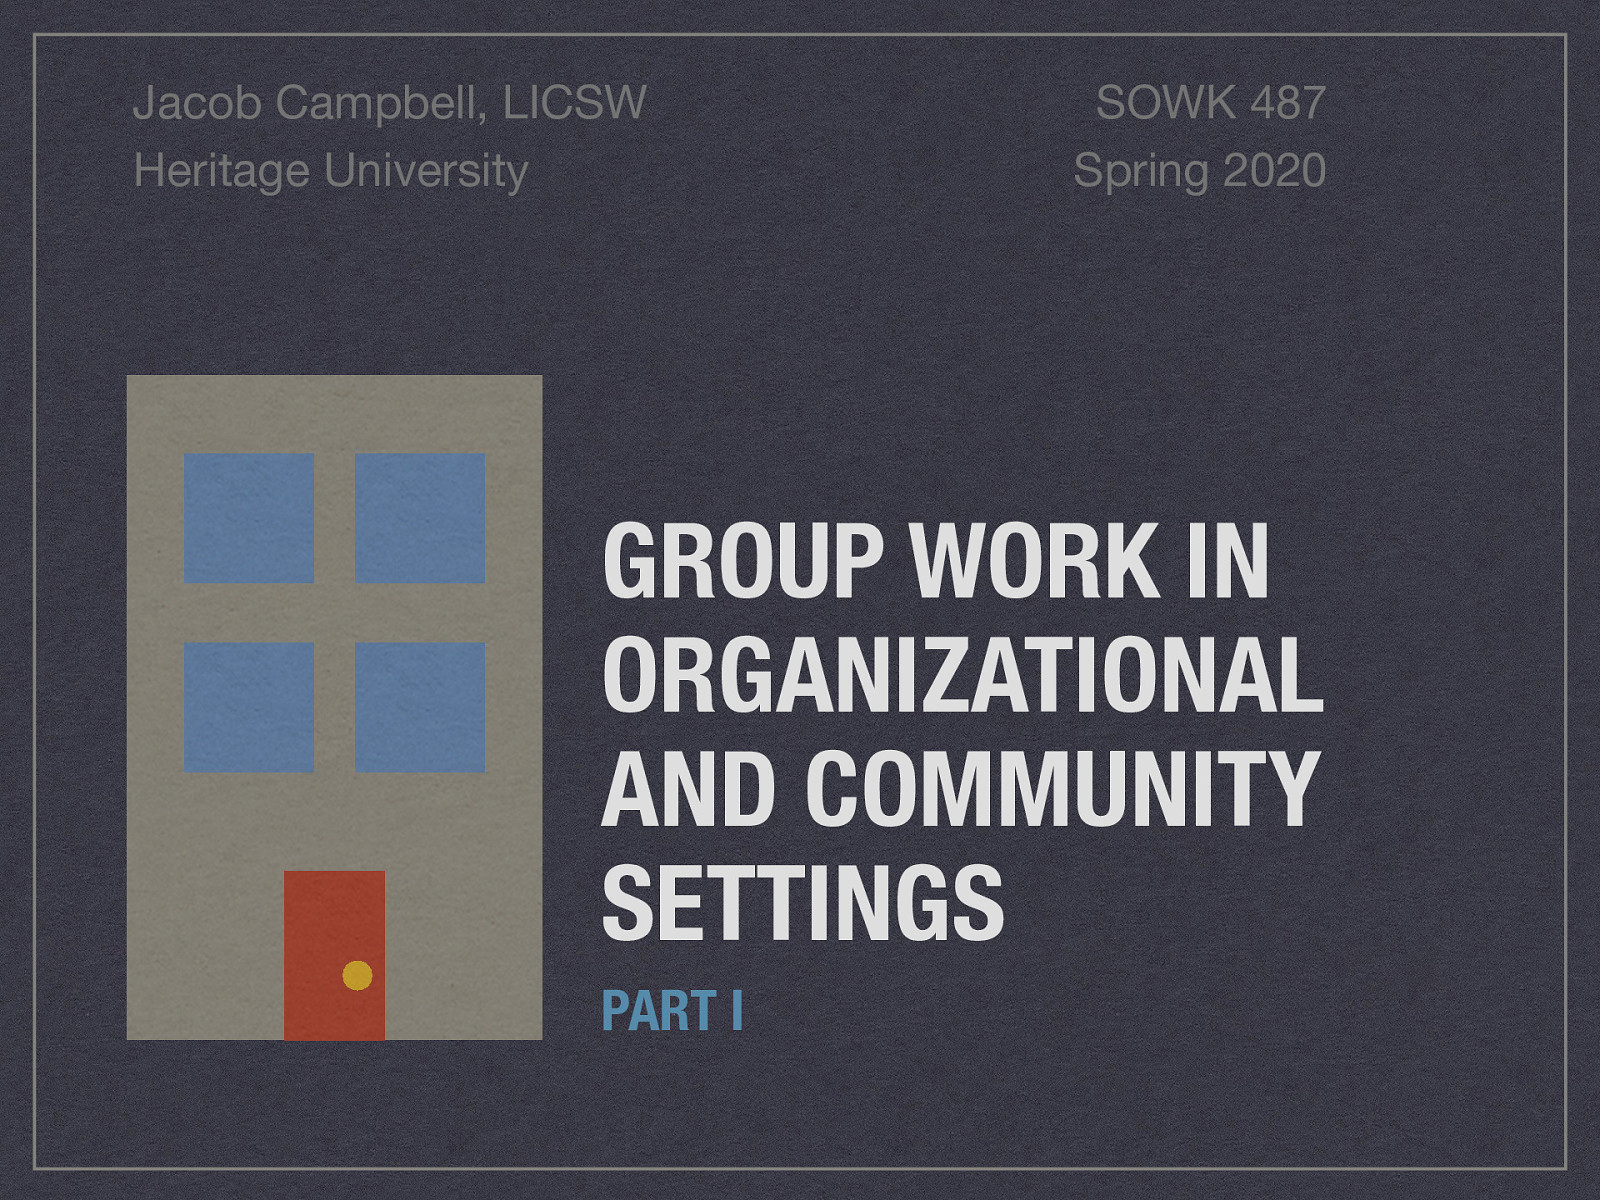 Week 14 - Group Work in Organizational and Community Settings Part I